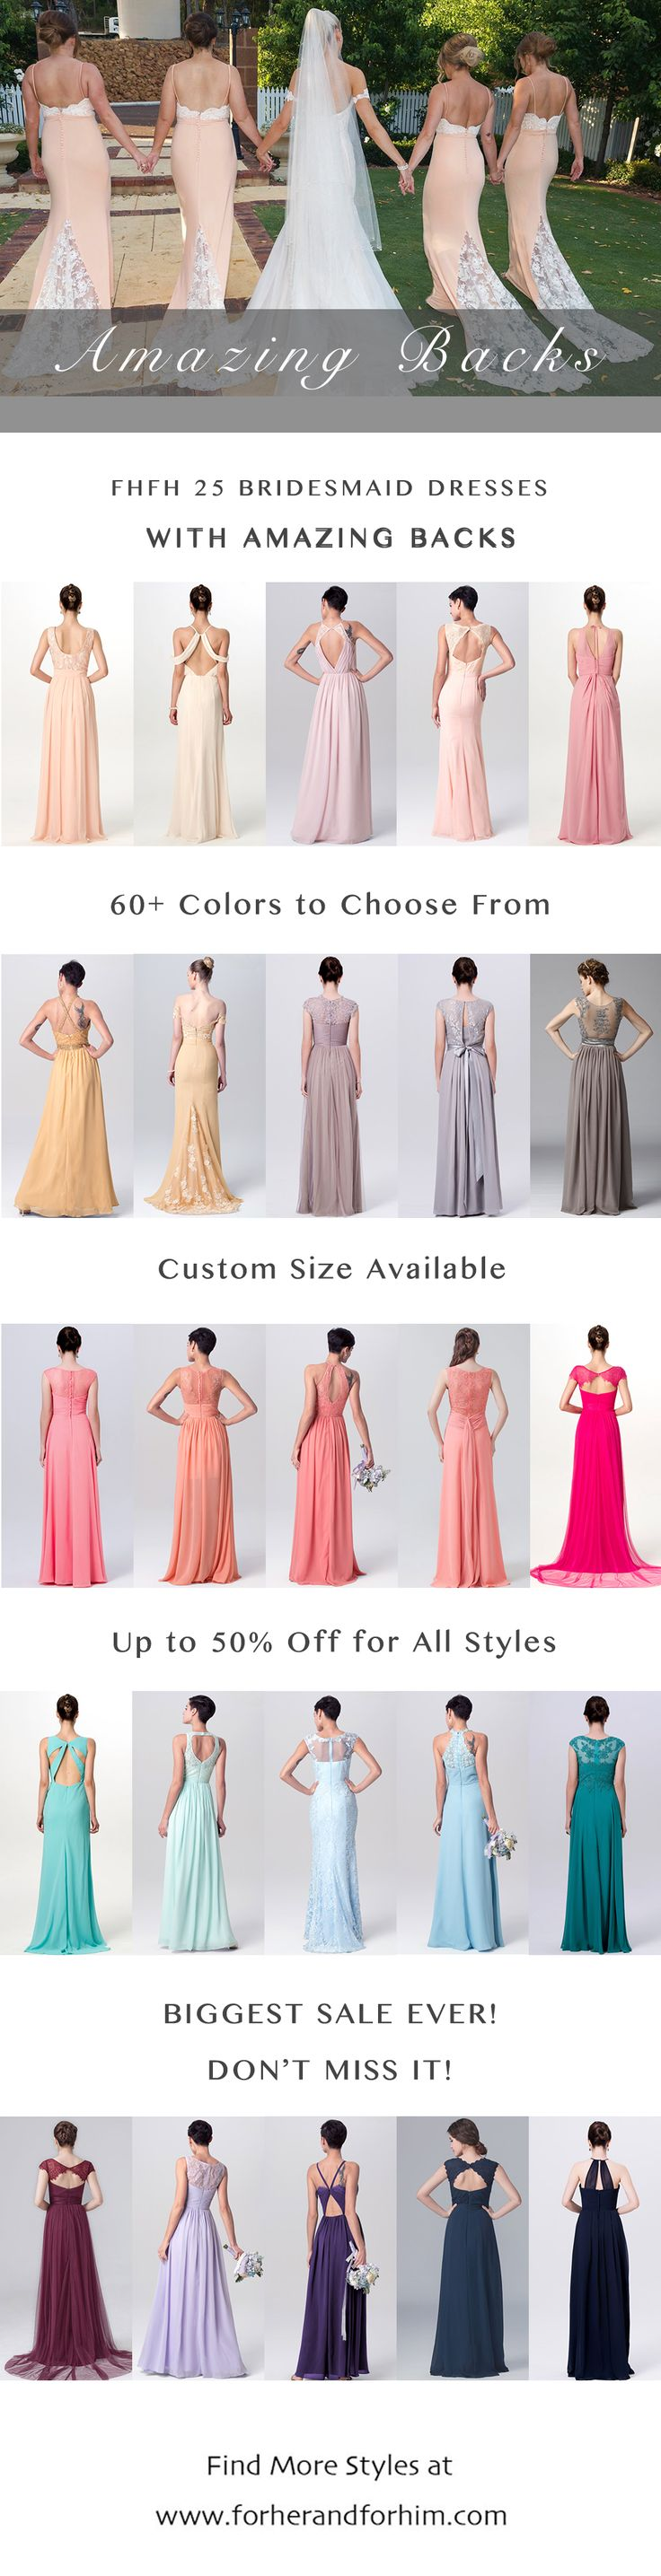 Check FHFH 25 bridesmaid dresses with amazing backs! The beautiful back details of these bridesmaid dresses are just SOOOO dreamy, they're almost better than the front...